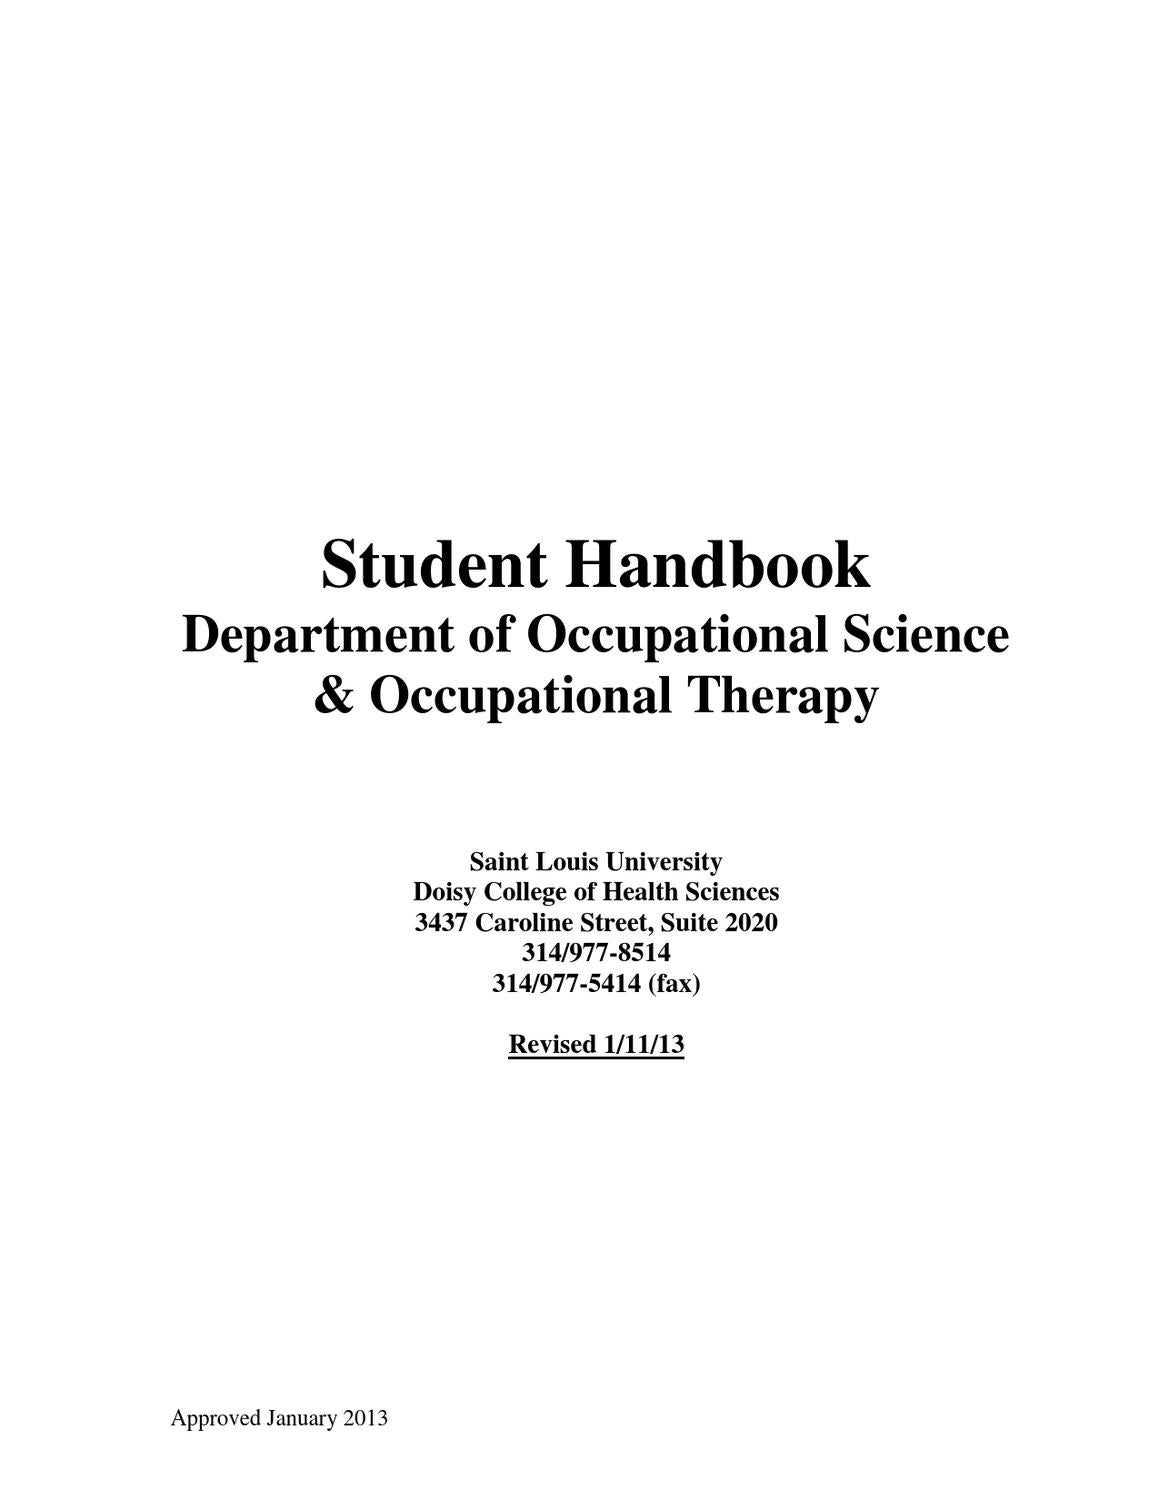 Occupational Science And Occupational Therapy Handbook By Doisy